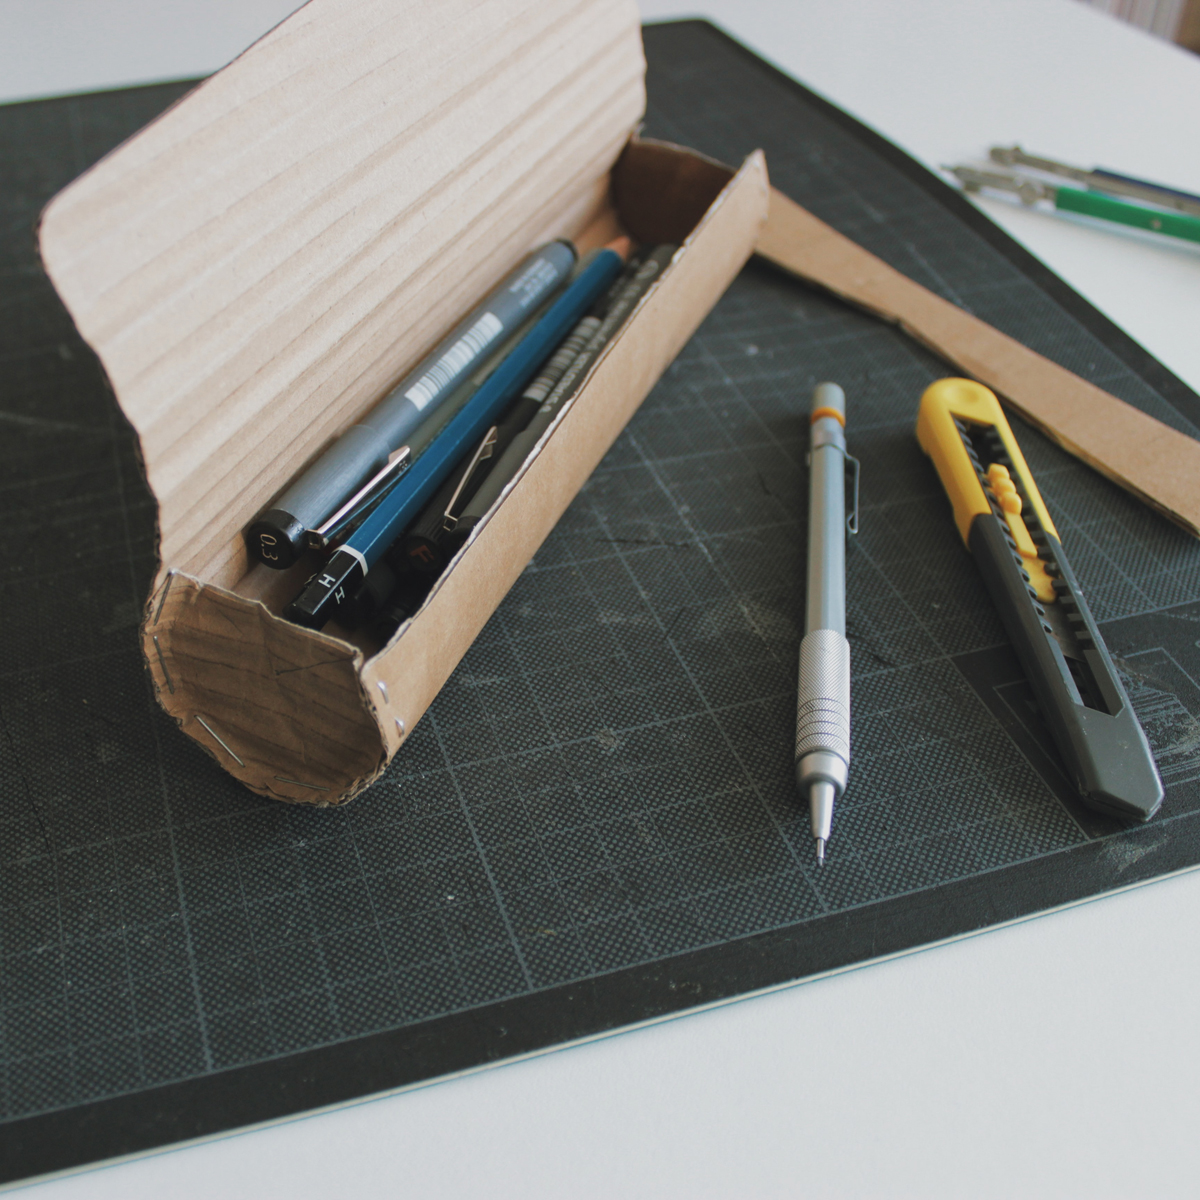 DAY 4 - straight into a cardboard mock-up this morning... hopefully by the end of the day this will be a slim, elegant leather pencil case for one of you lovely folk to win!